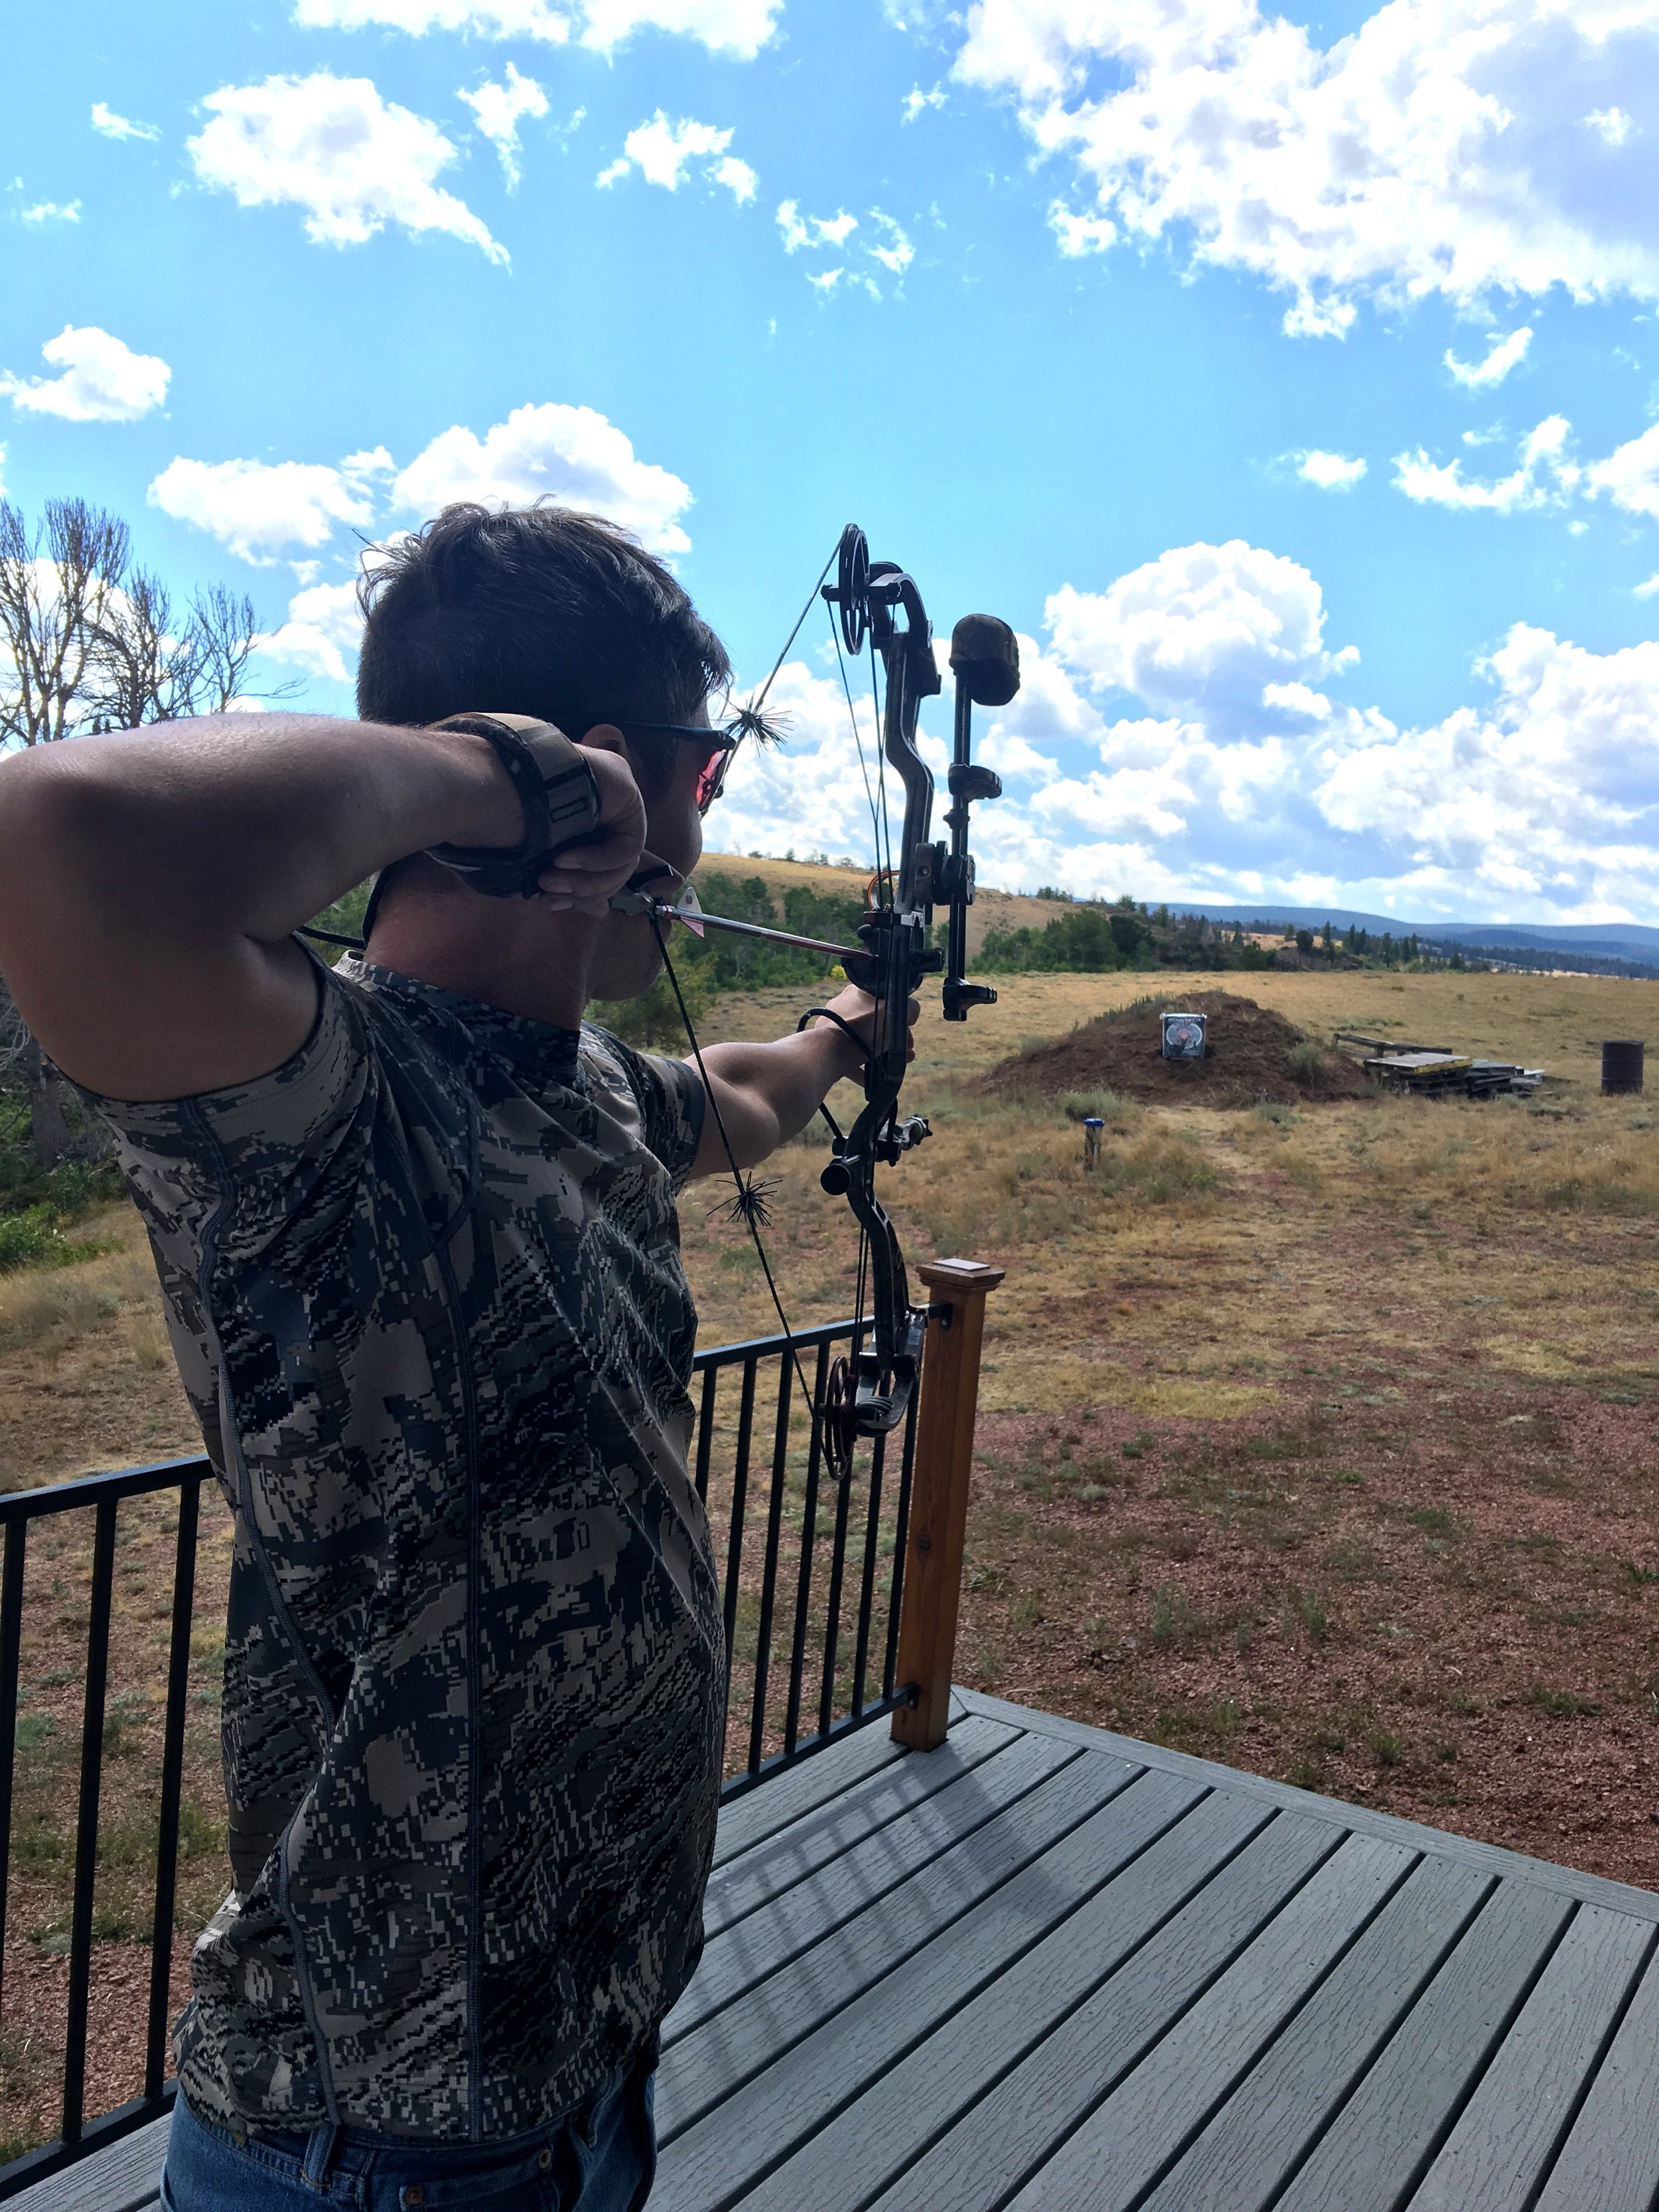 Ben practicing with his compound bow